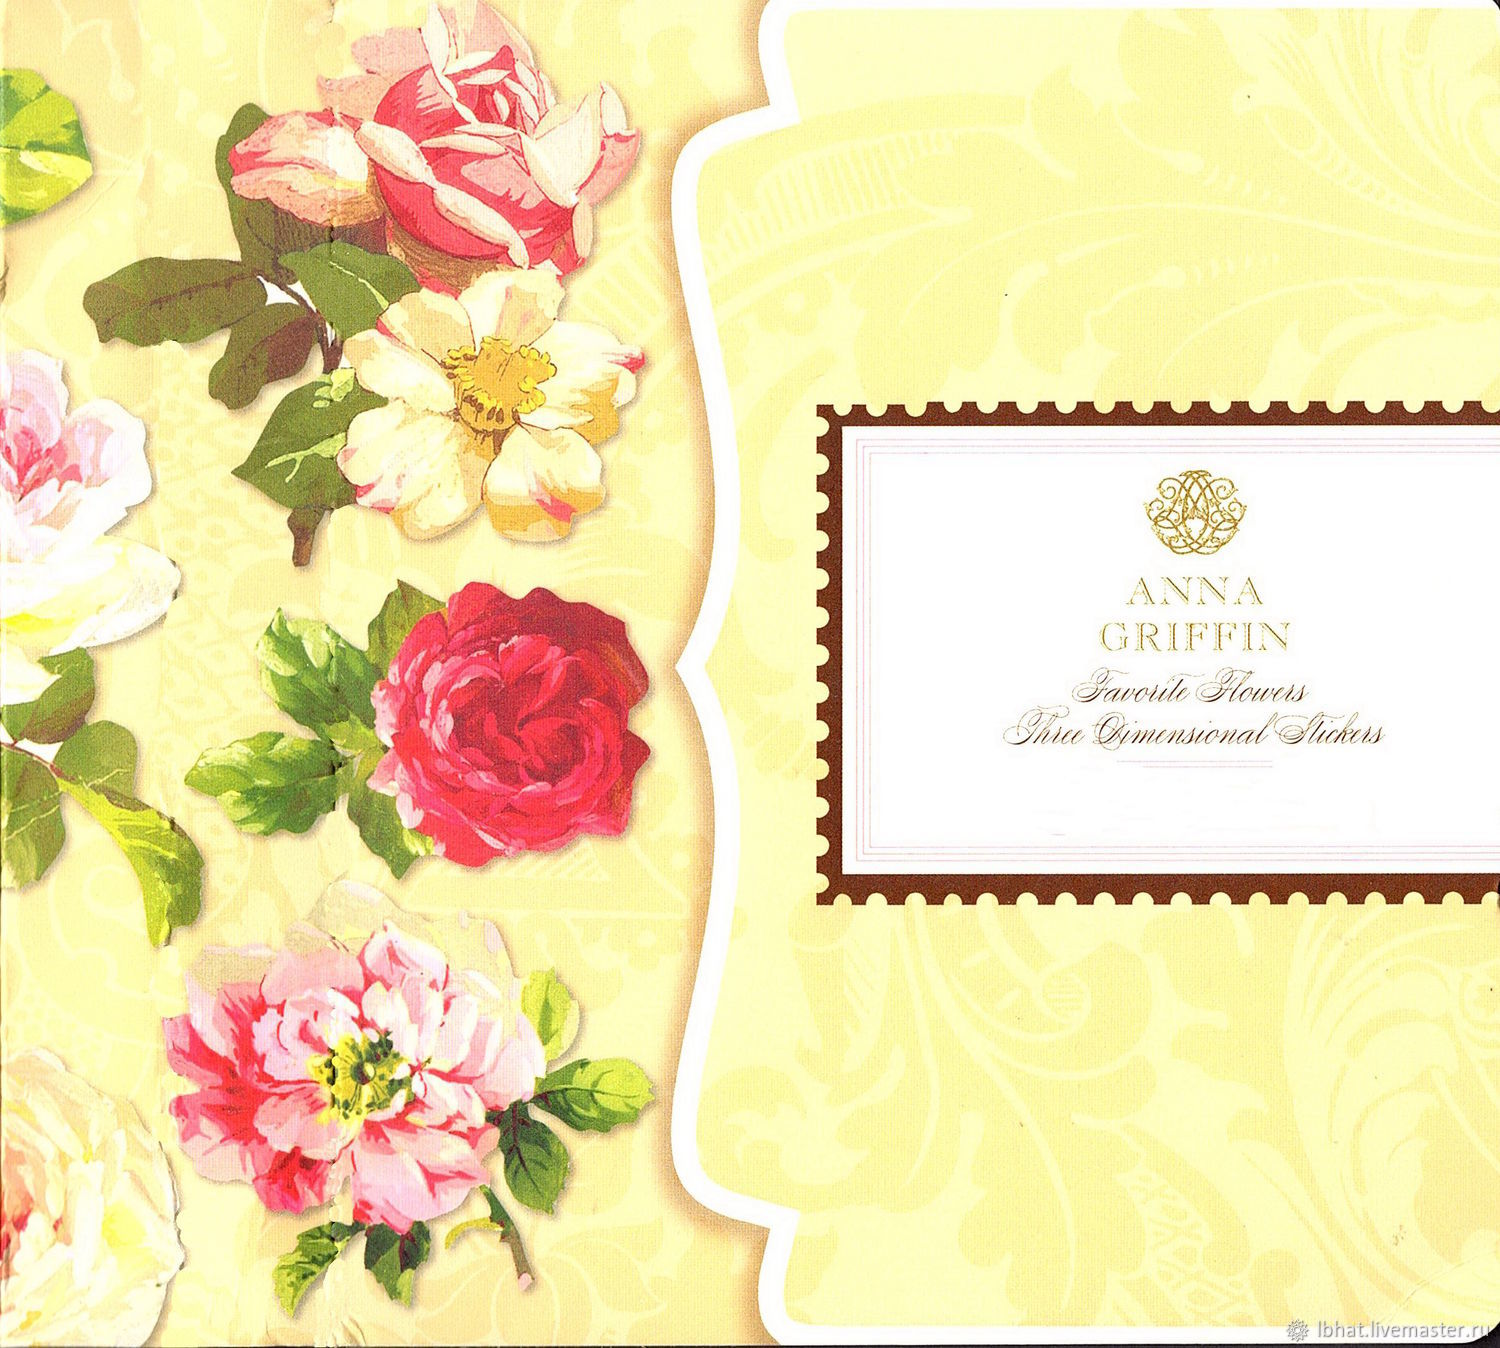 Anna Griffin favorite Flower Stickers set (120-Count), Sticker, Moscow,  Фото №1